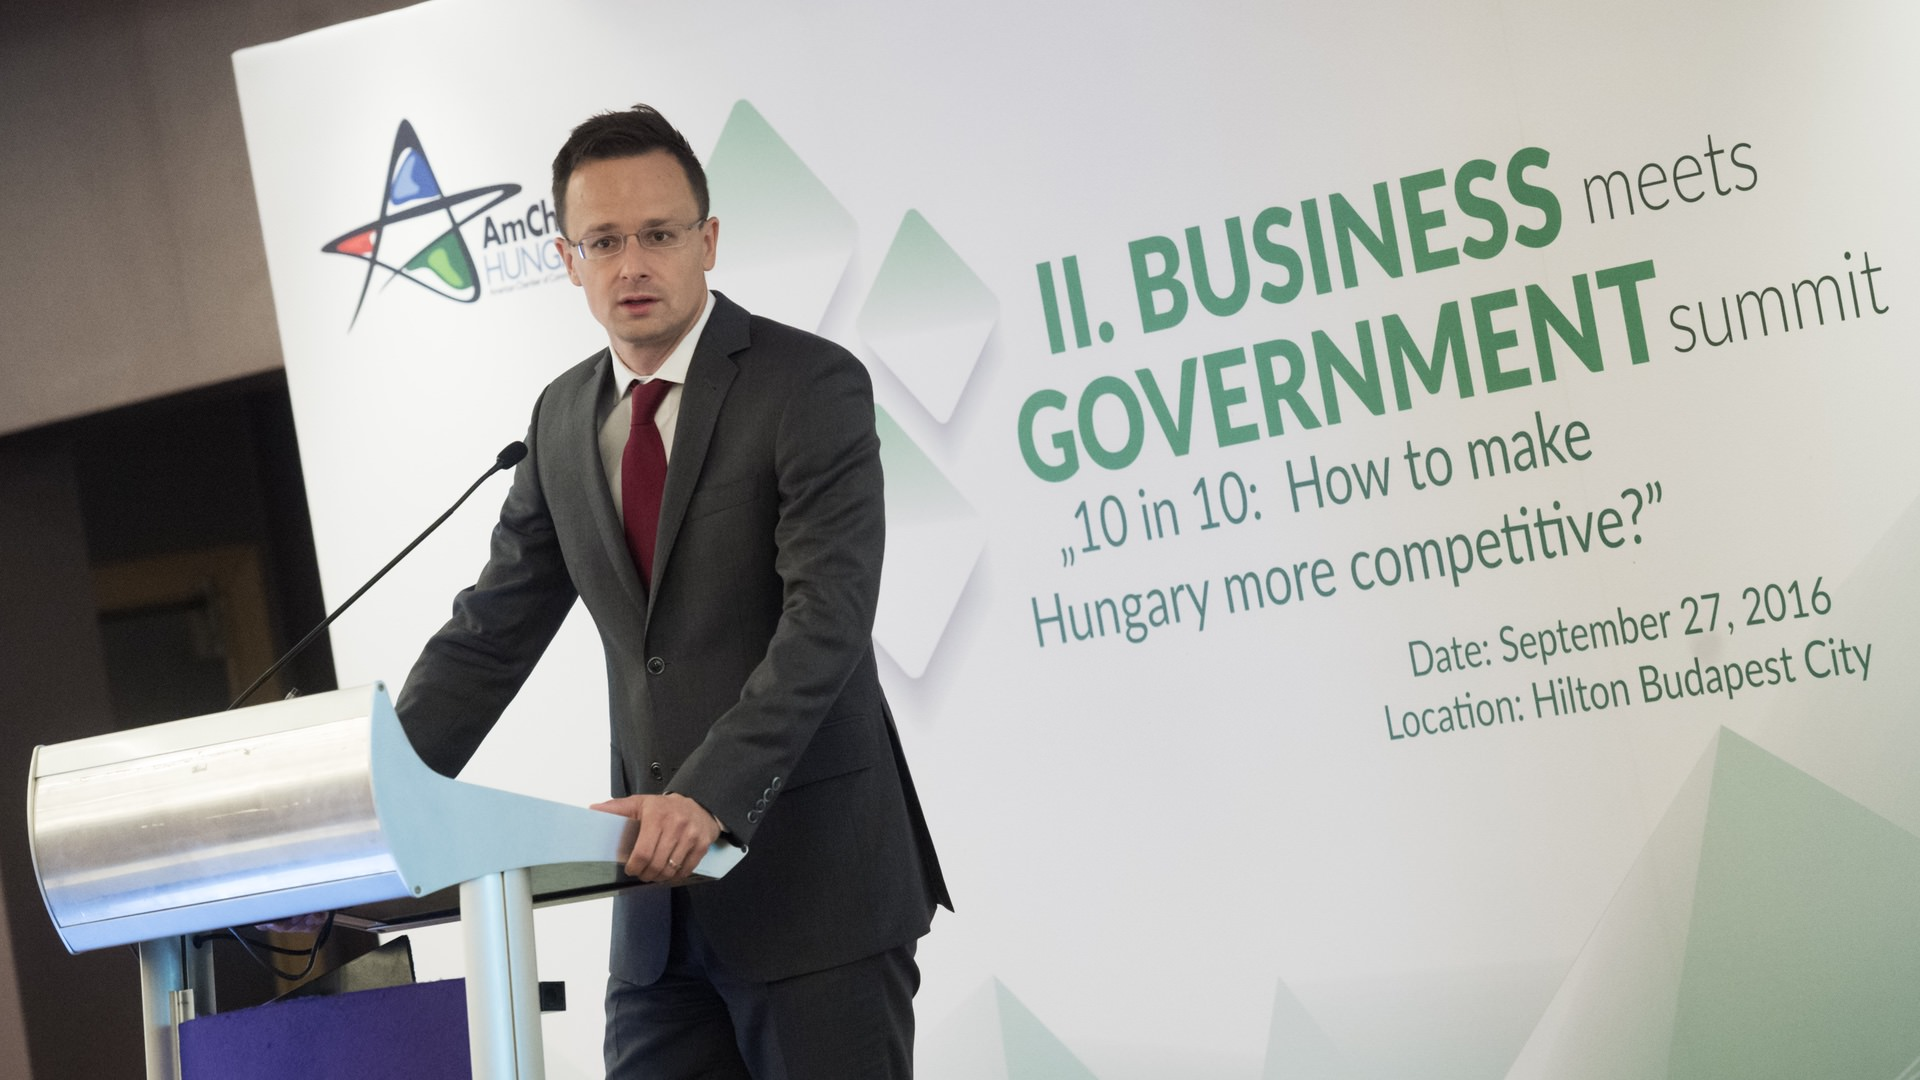 A More Competitive Hungary – the Common Goal of the Government and Companies